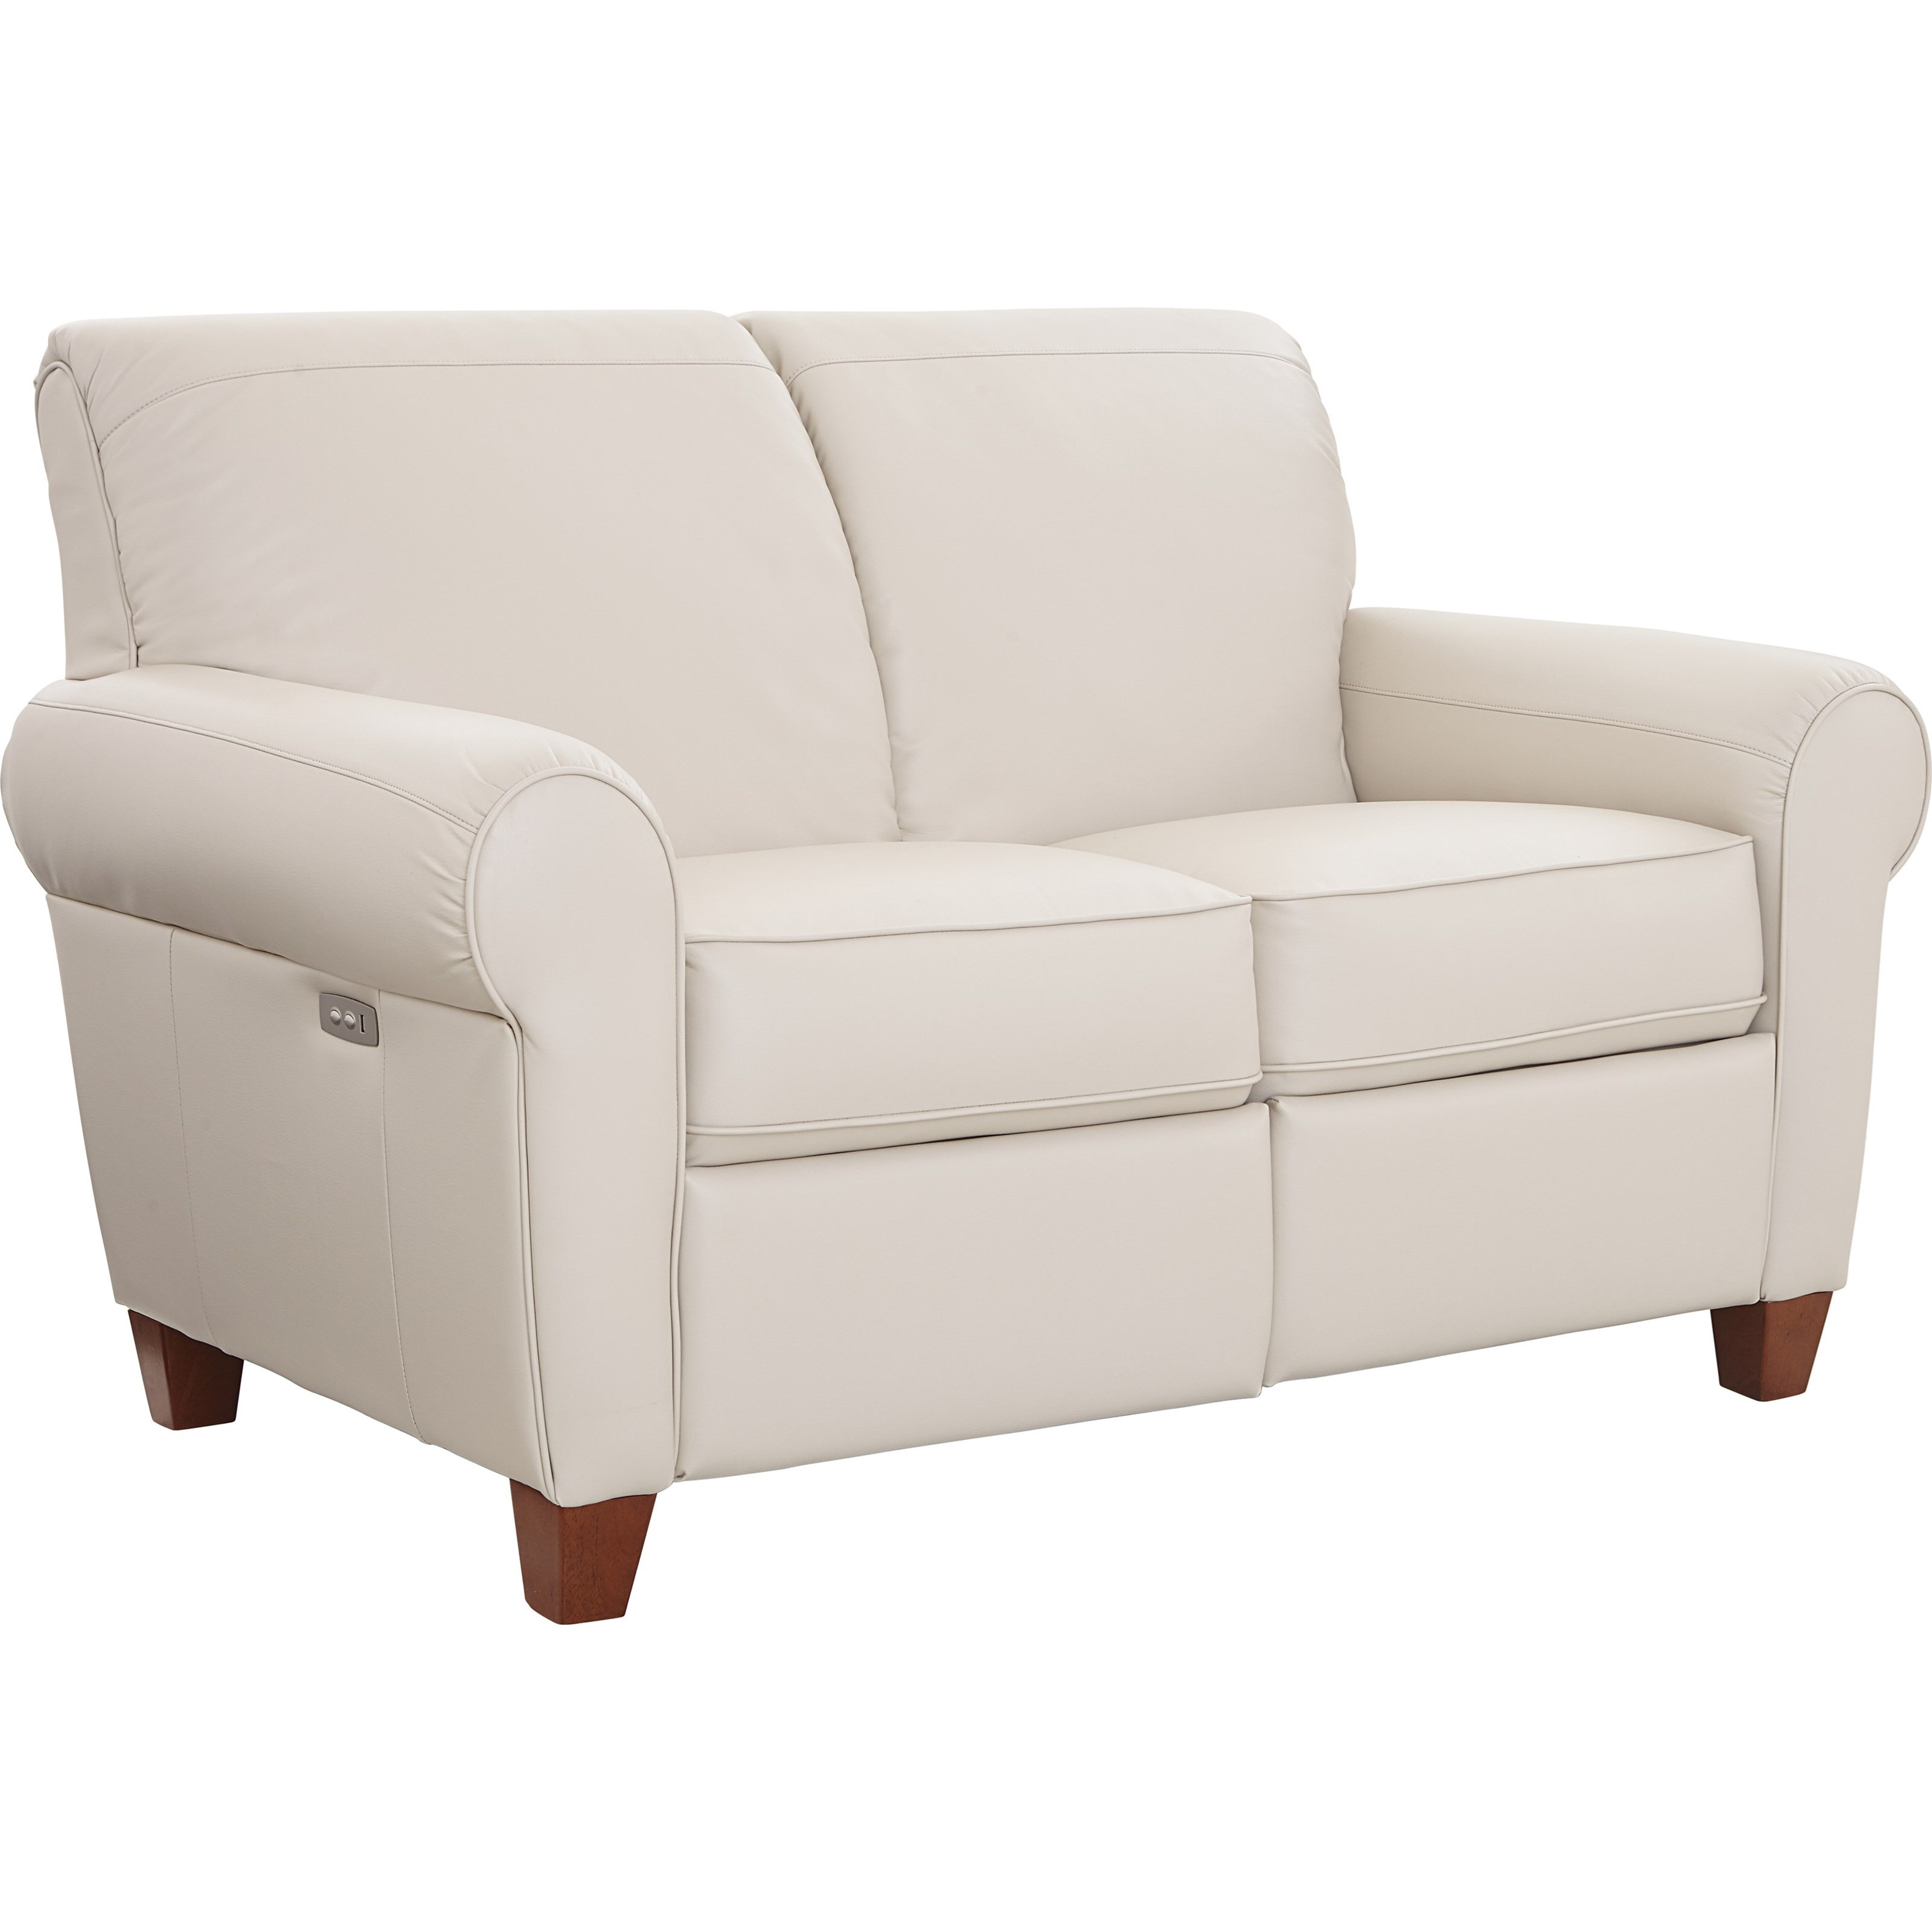 Bennett Duo™ Reclining Loveseat by La-Z-Boy at Fisher Home Furnishings